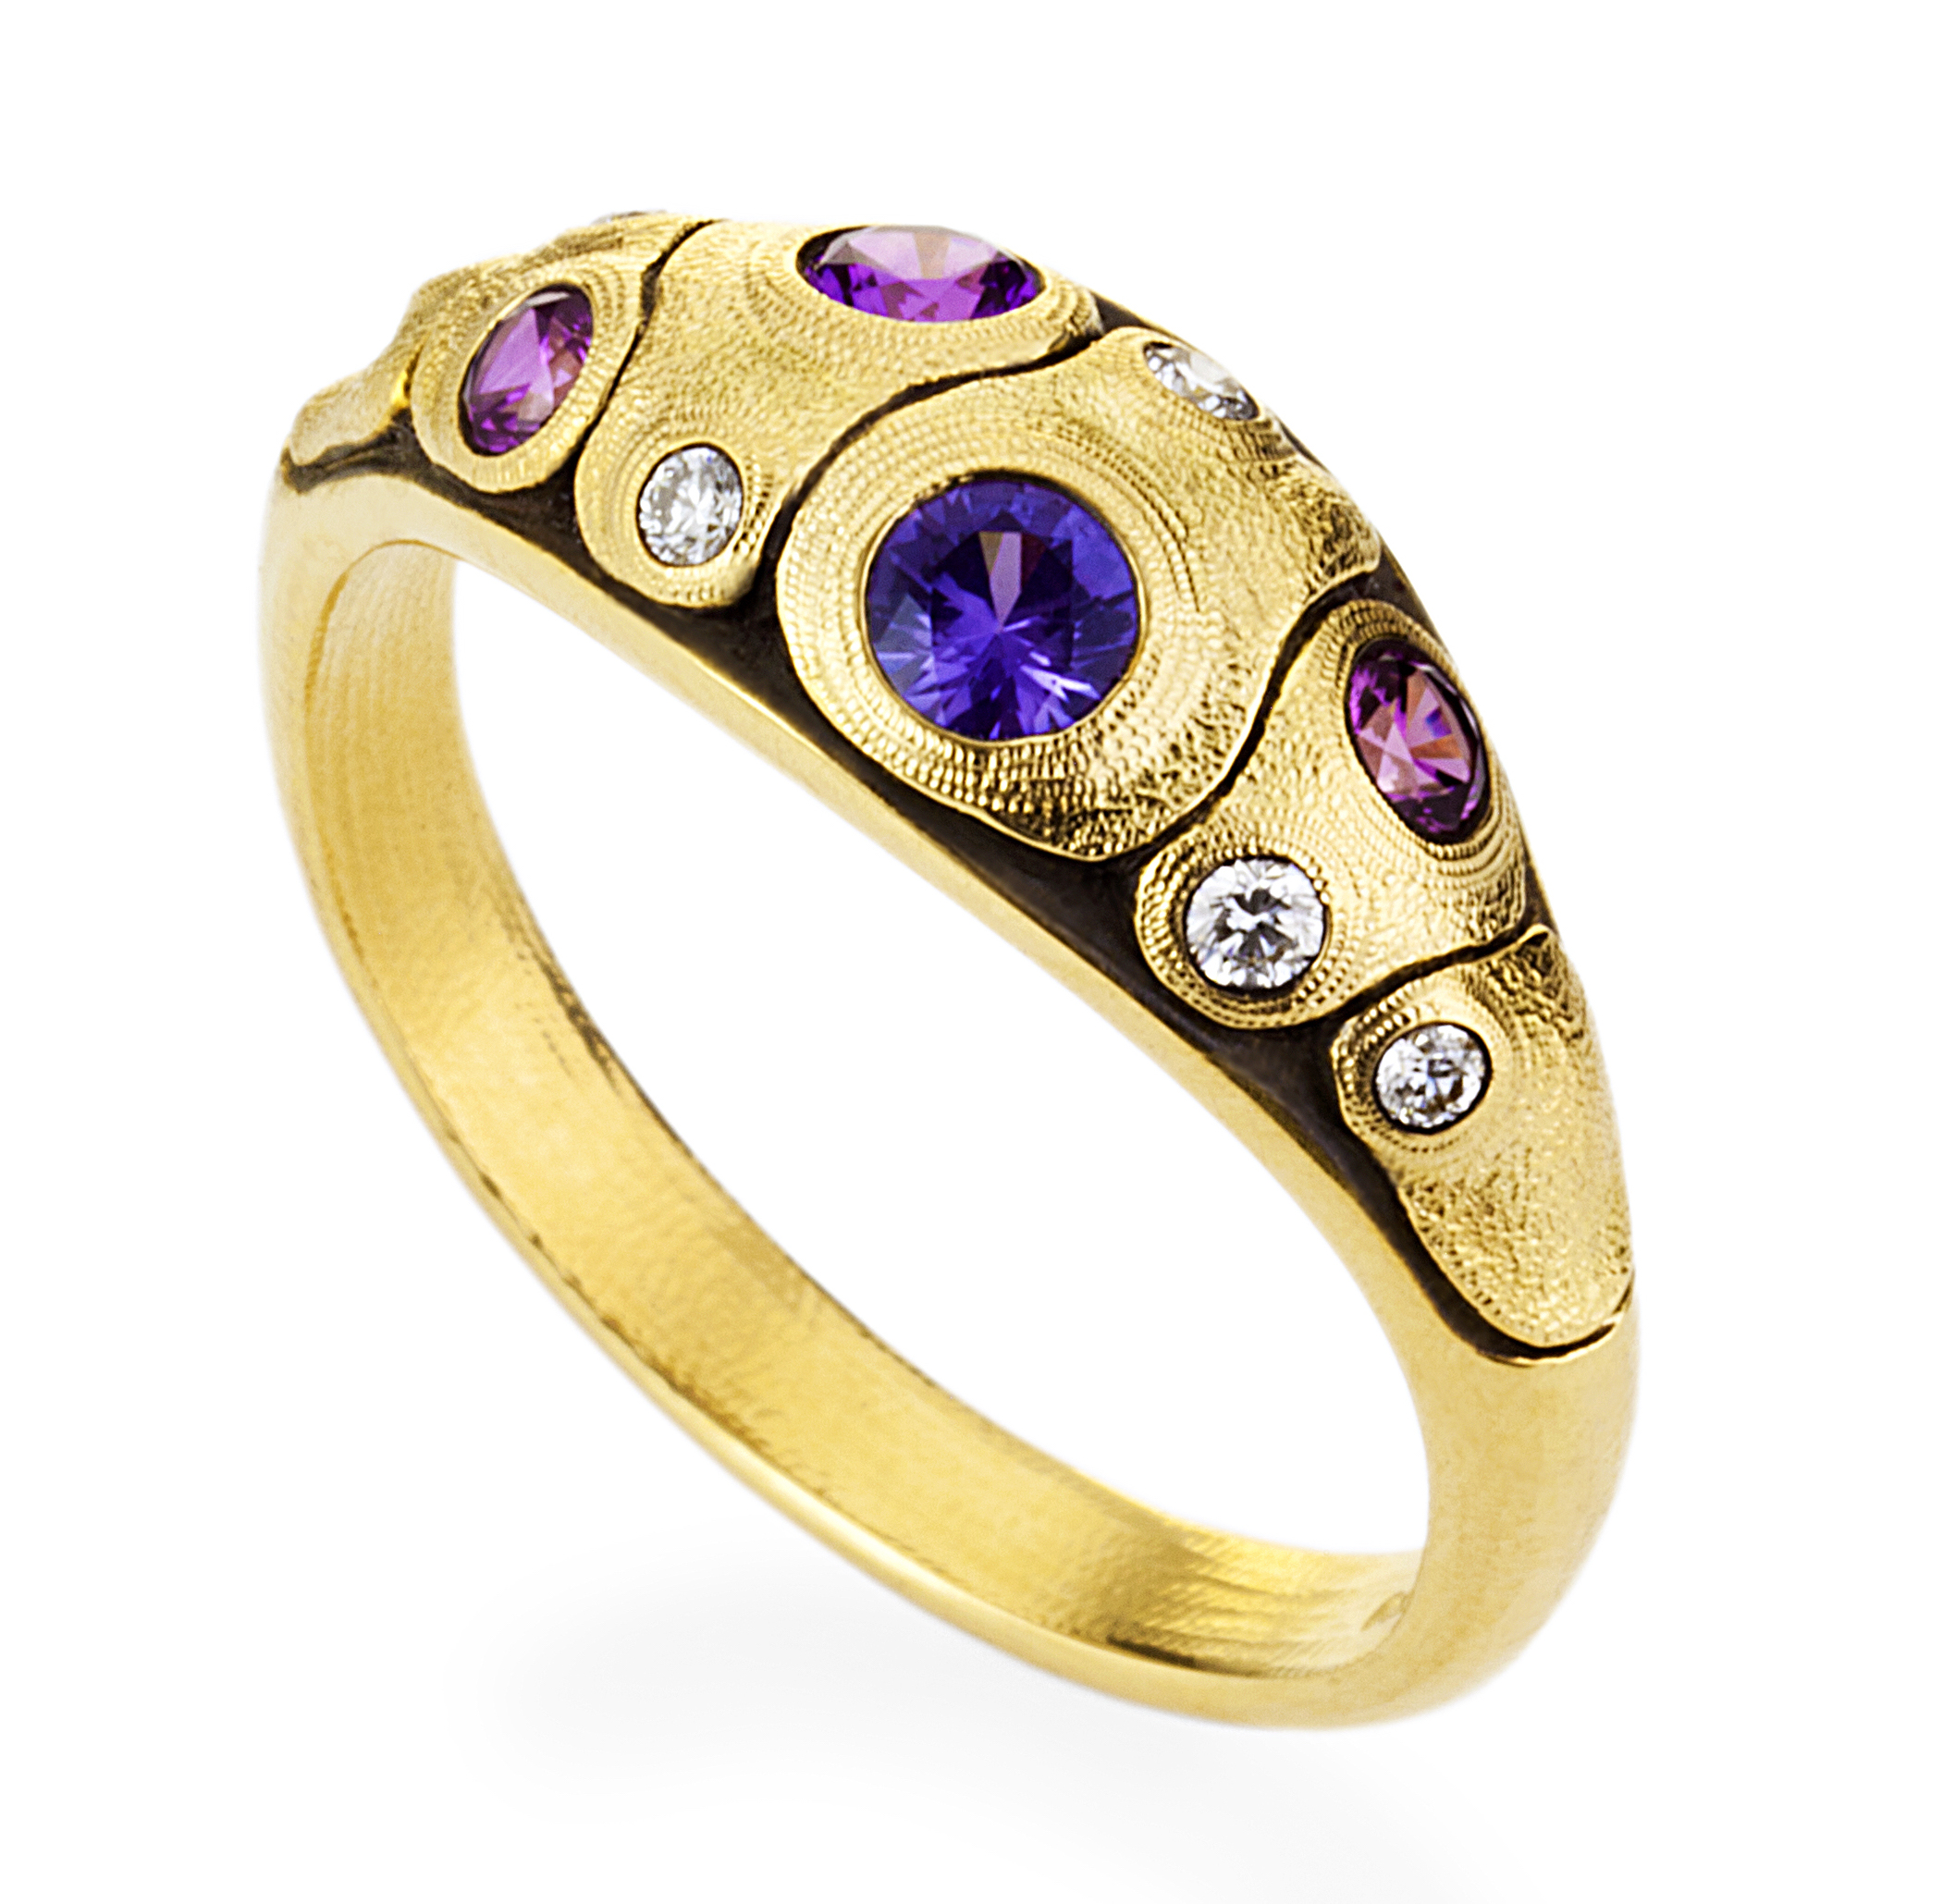 Alex Sepkus Anna II Dome ring | JCK On Your Market